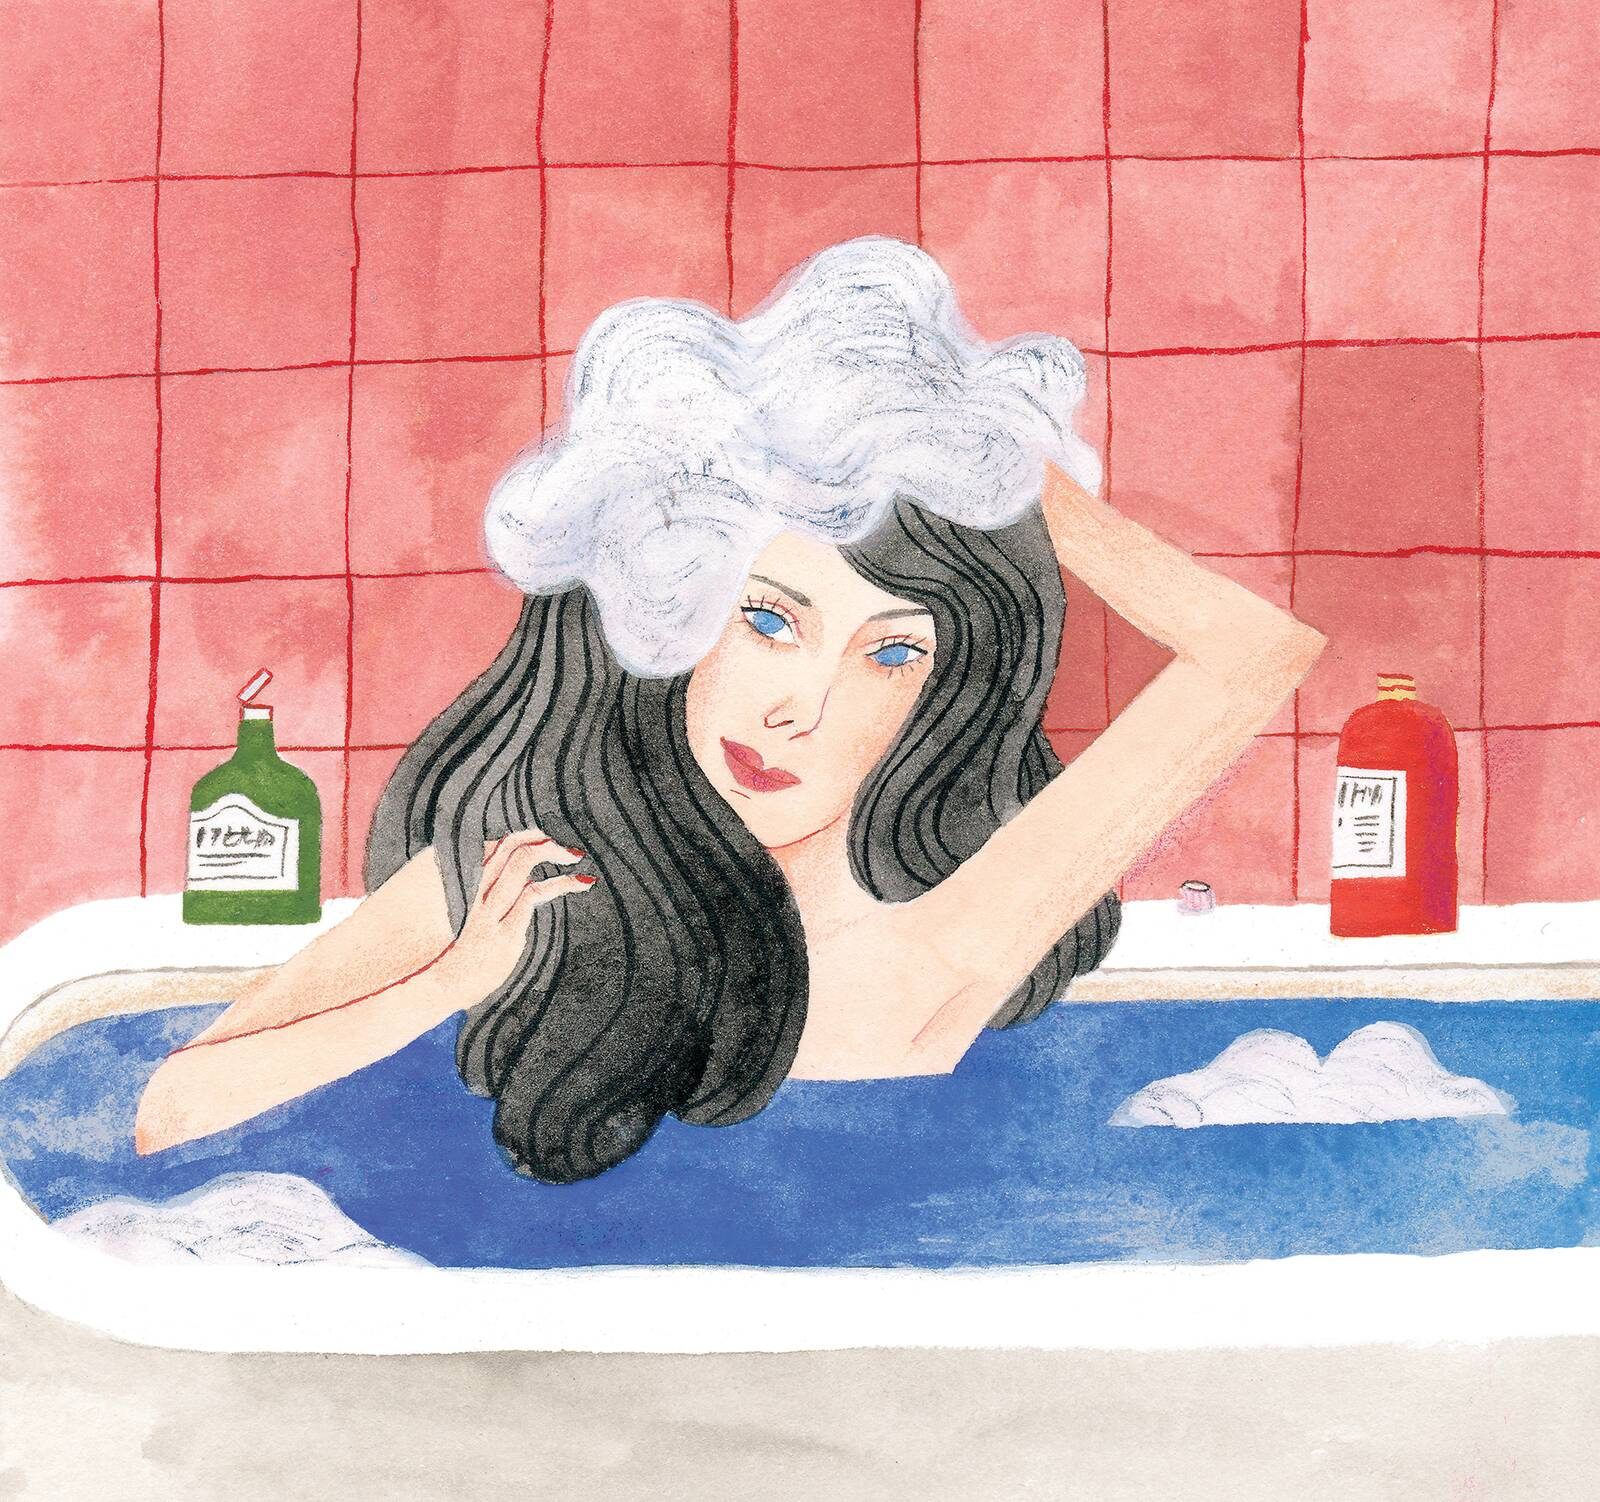 Illustration: Halve Your Shower Time